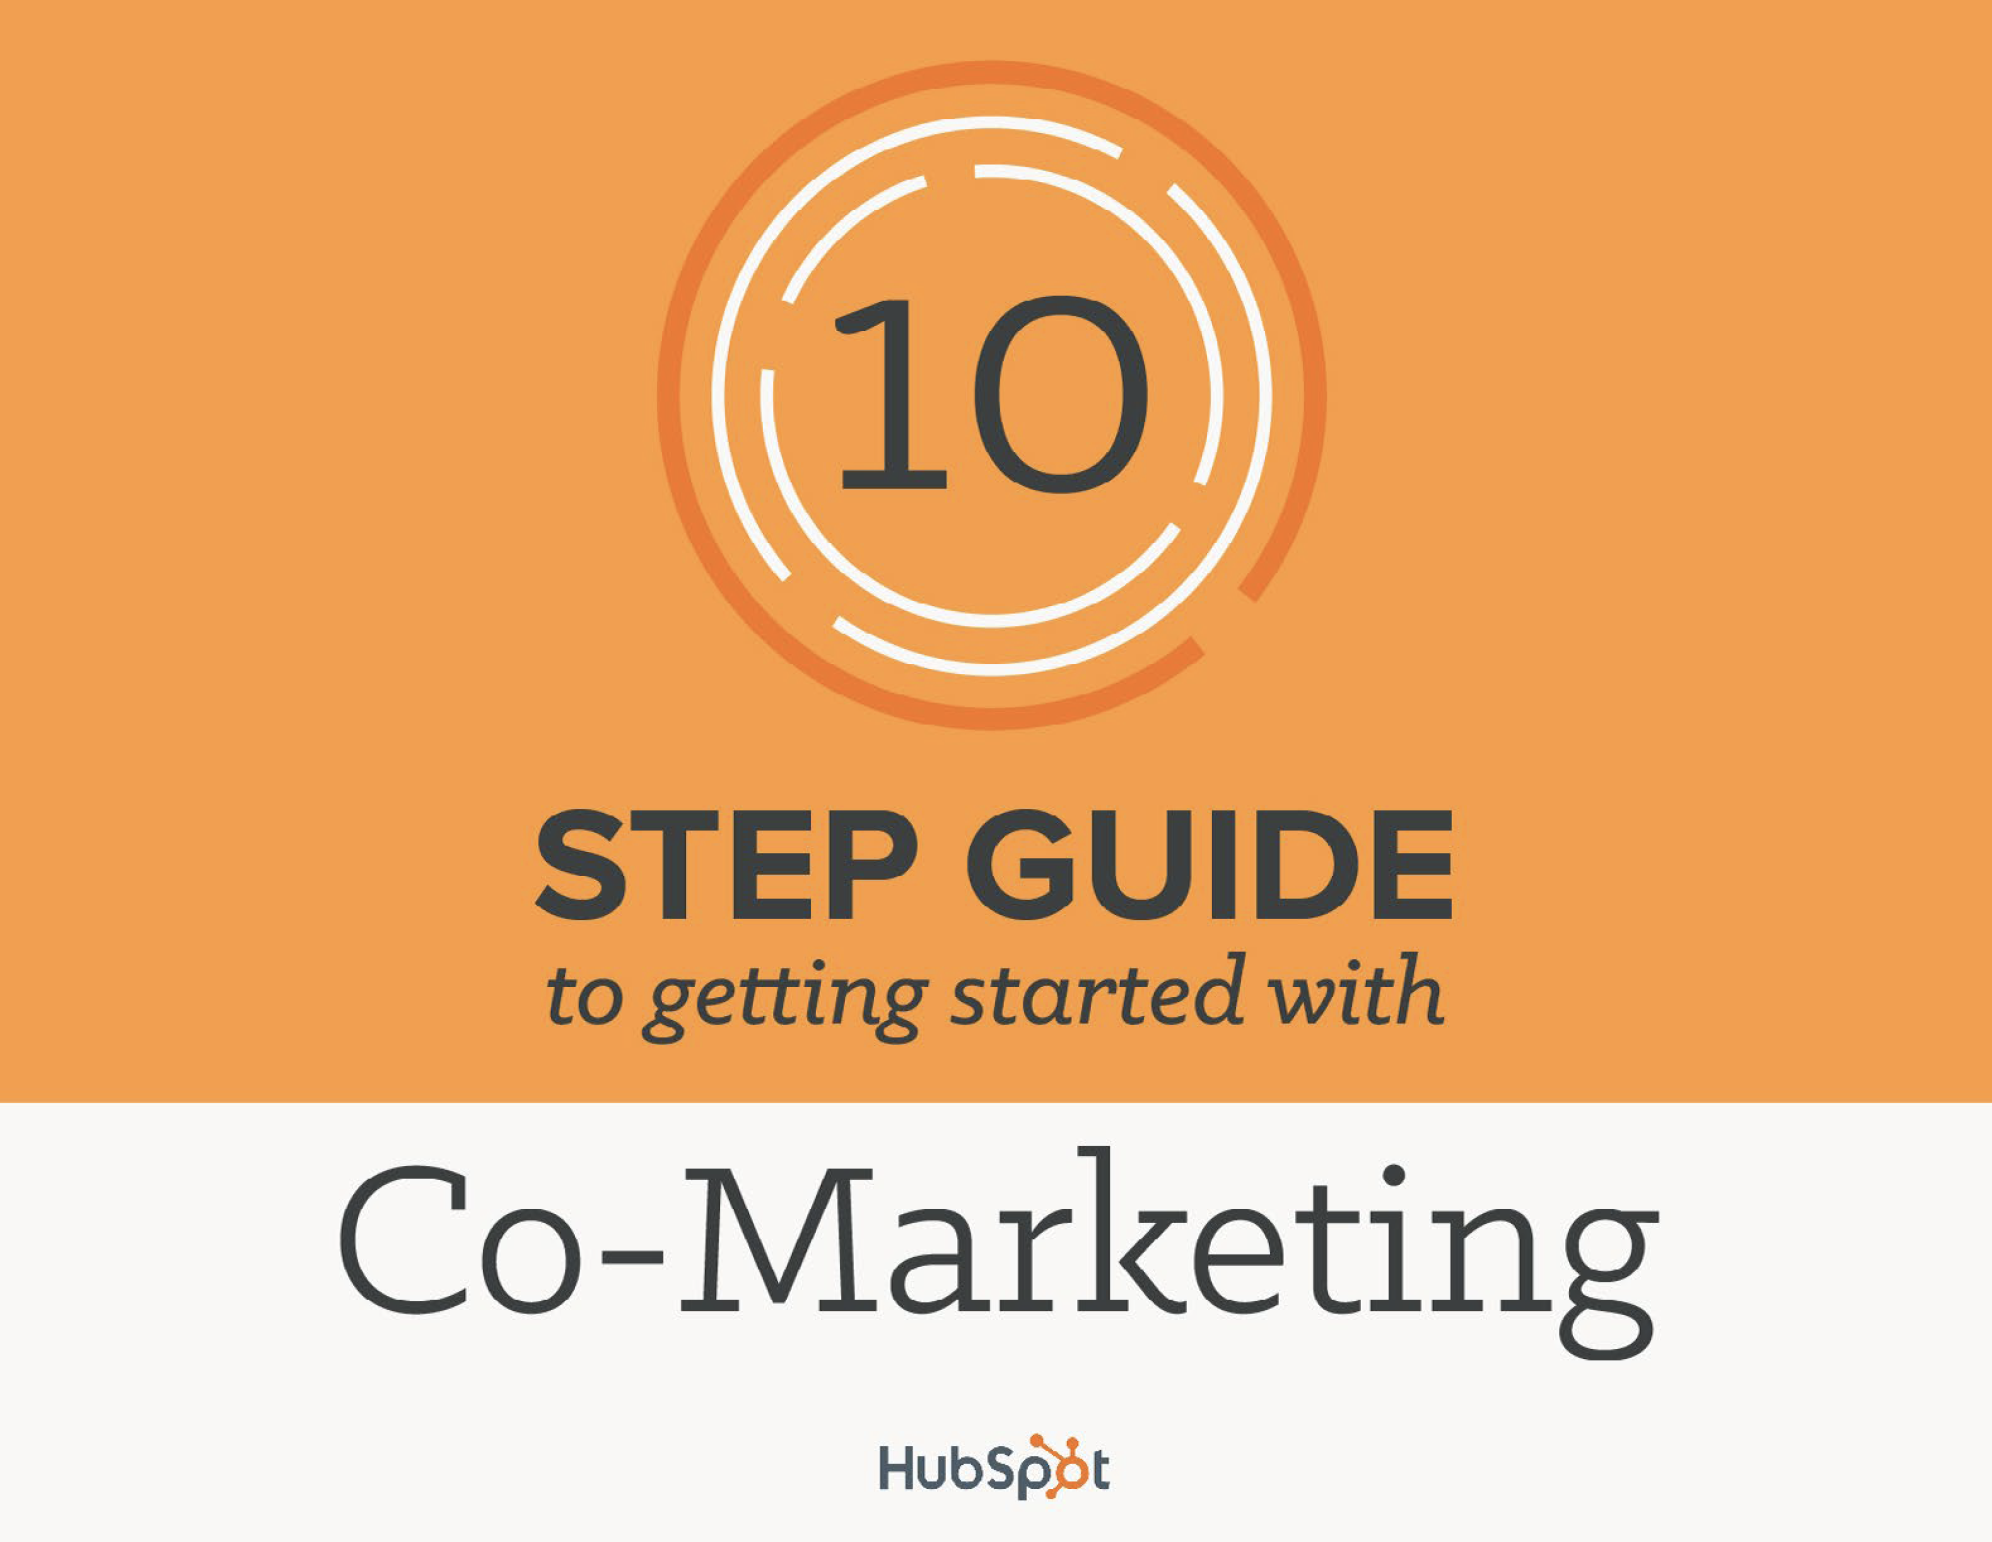 10 Step Guide to Getting Started with Co-Marketing 1